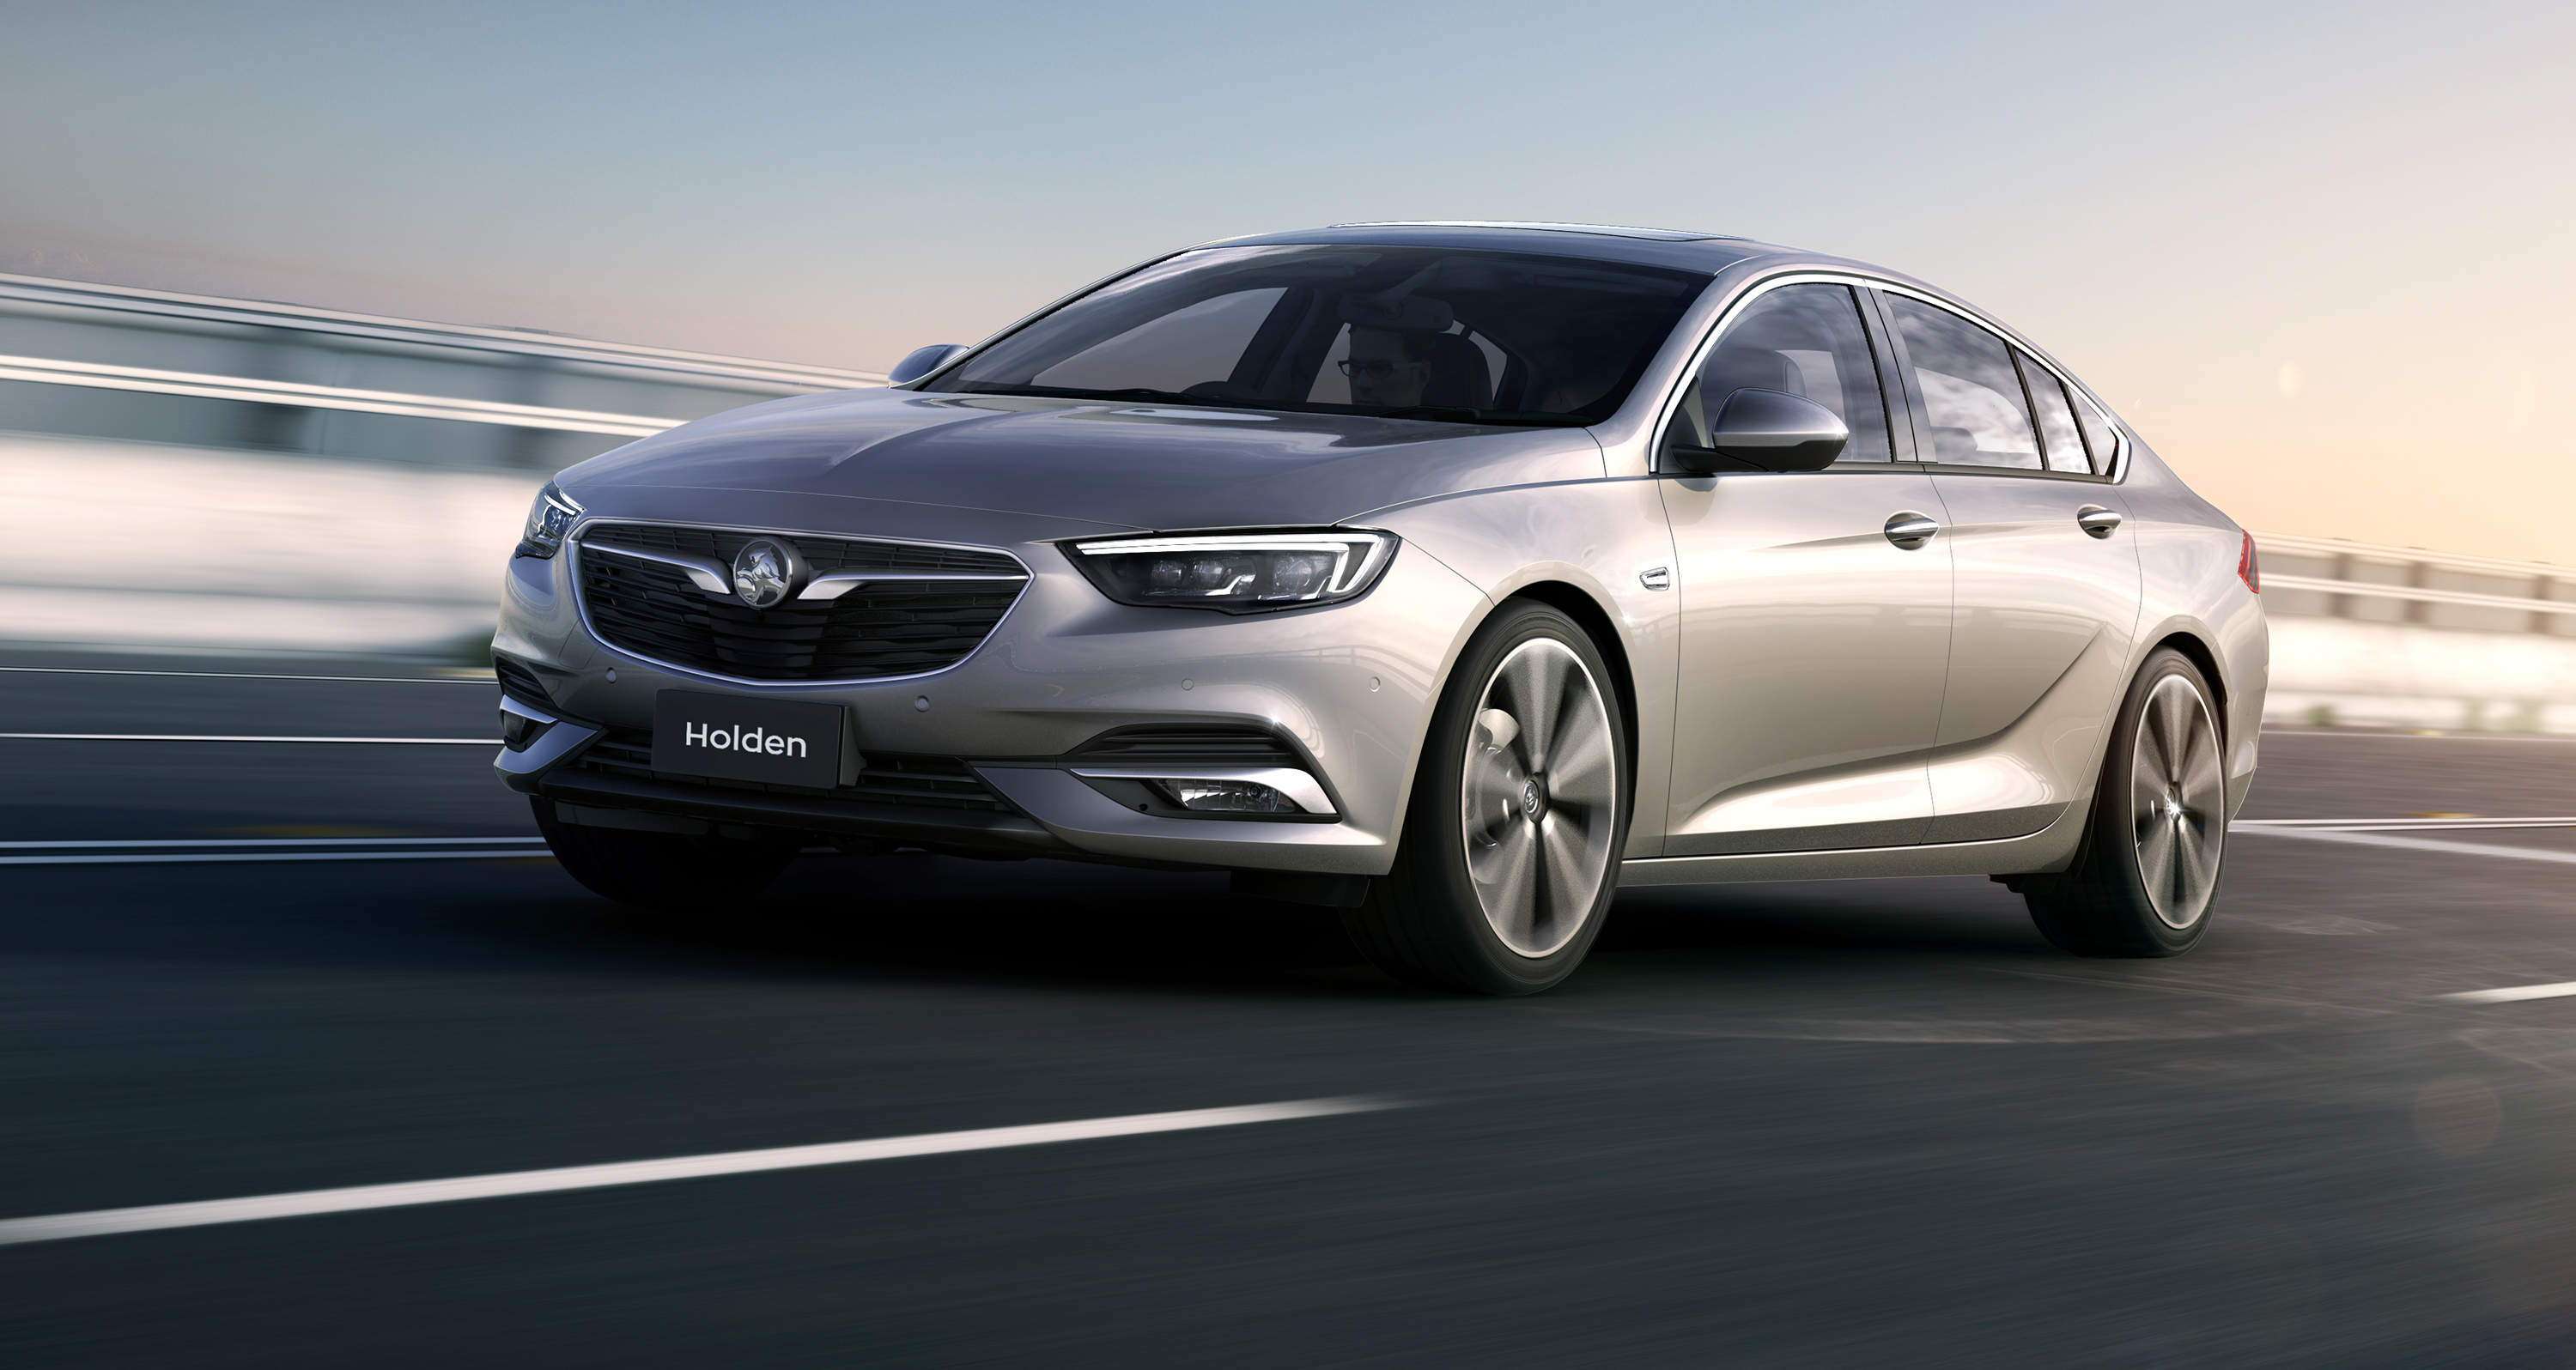 Tucson 2017 Vs Tucson 2018 >> 2018 Holden Commodore revealed, officially: Wraps come off fully-imported family hauler - Photos ...